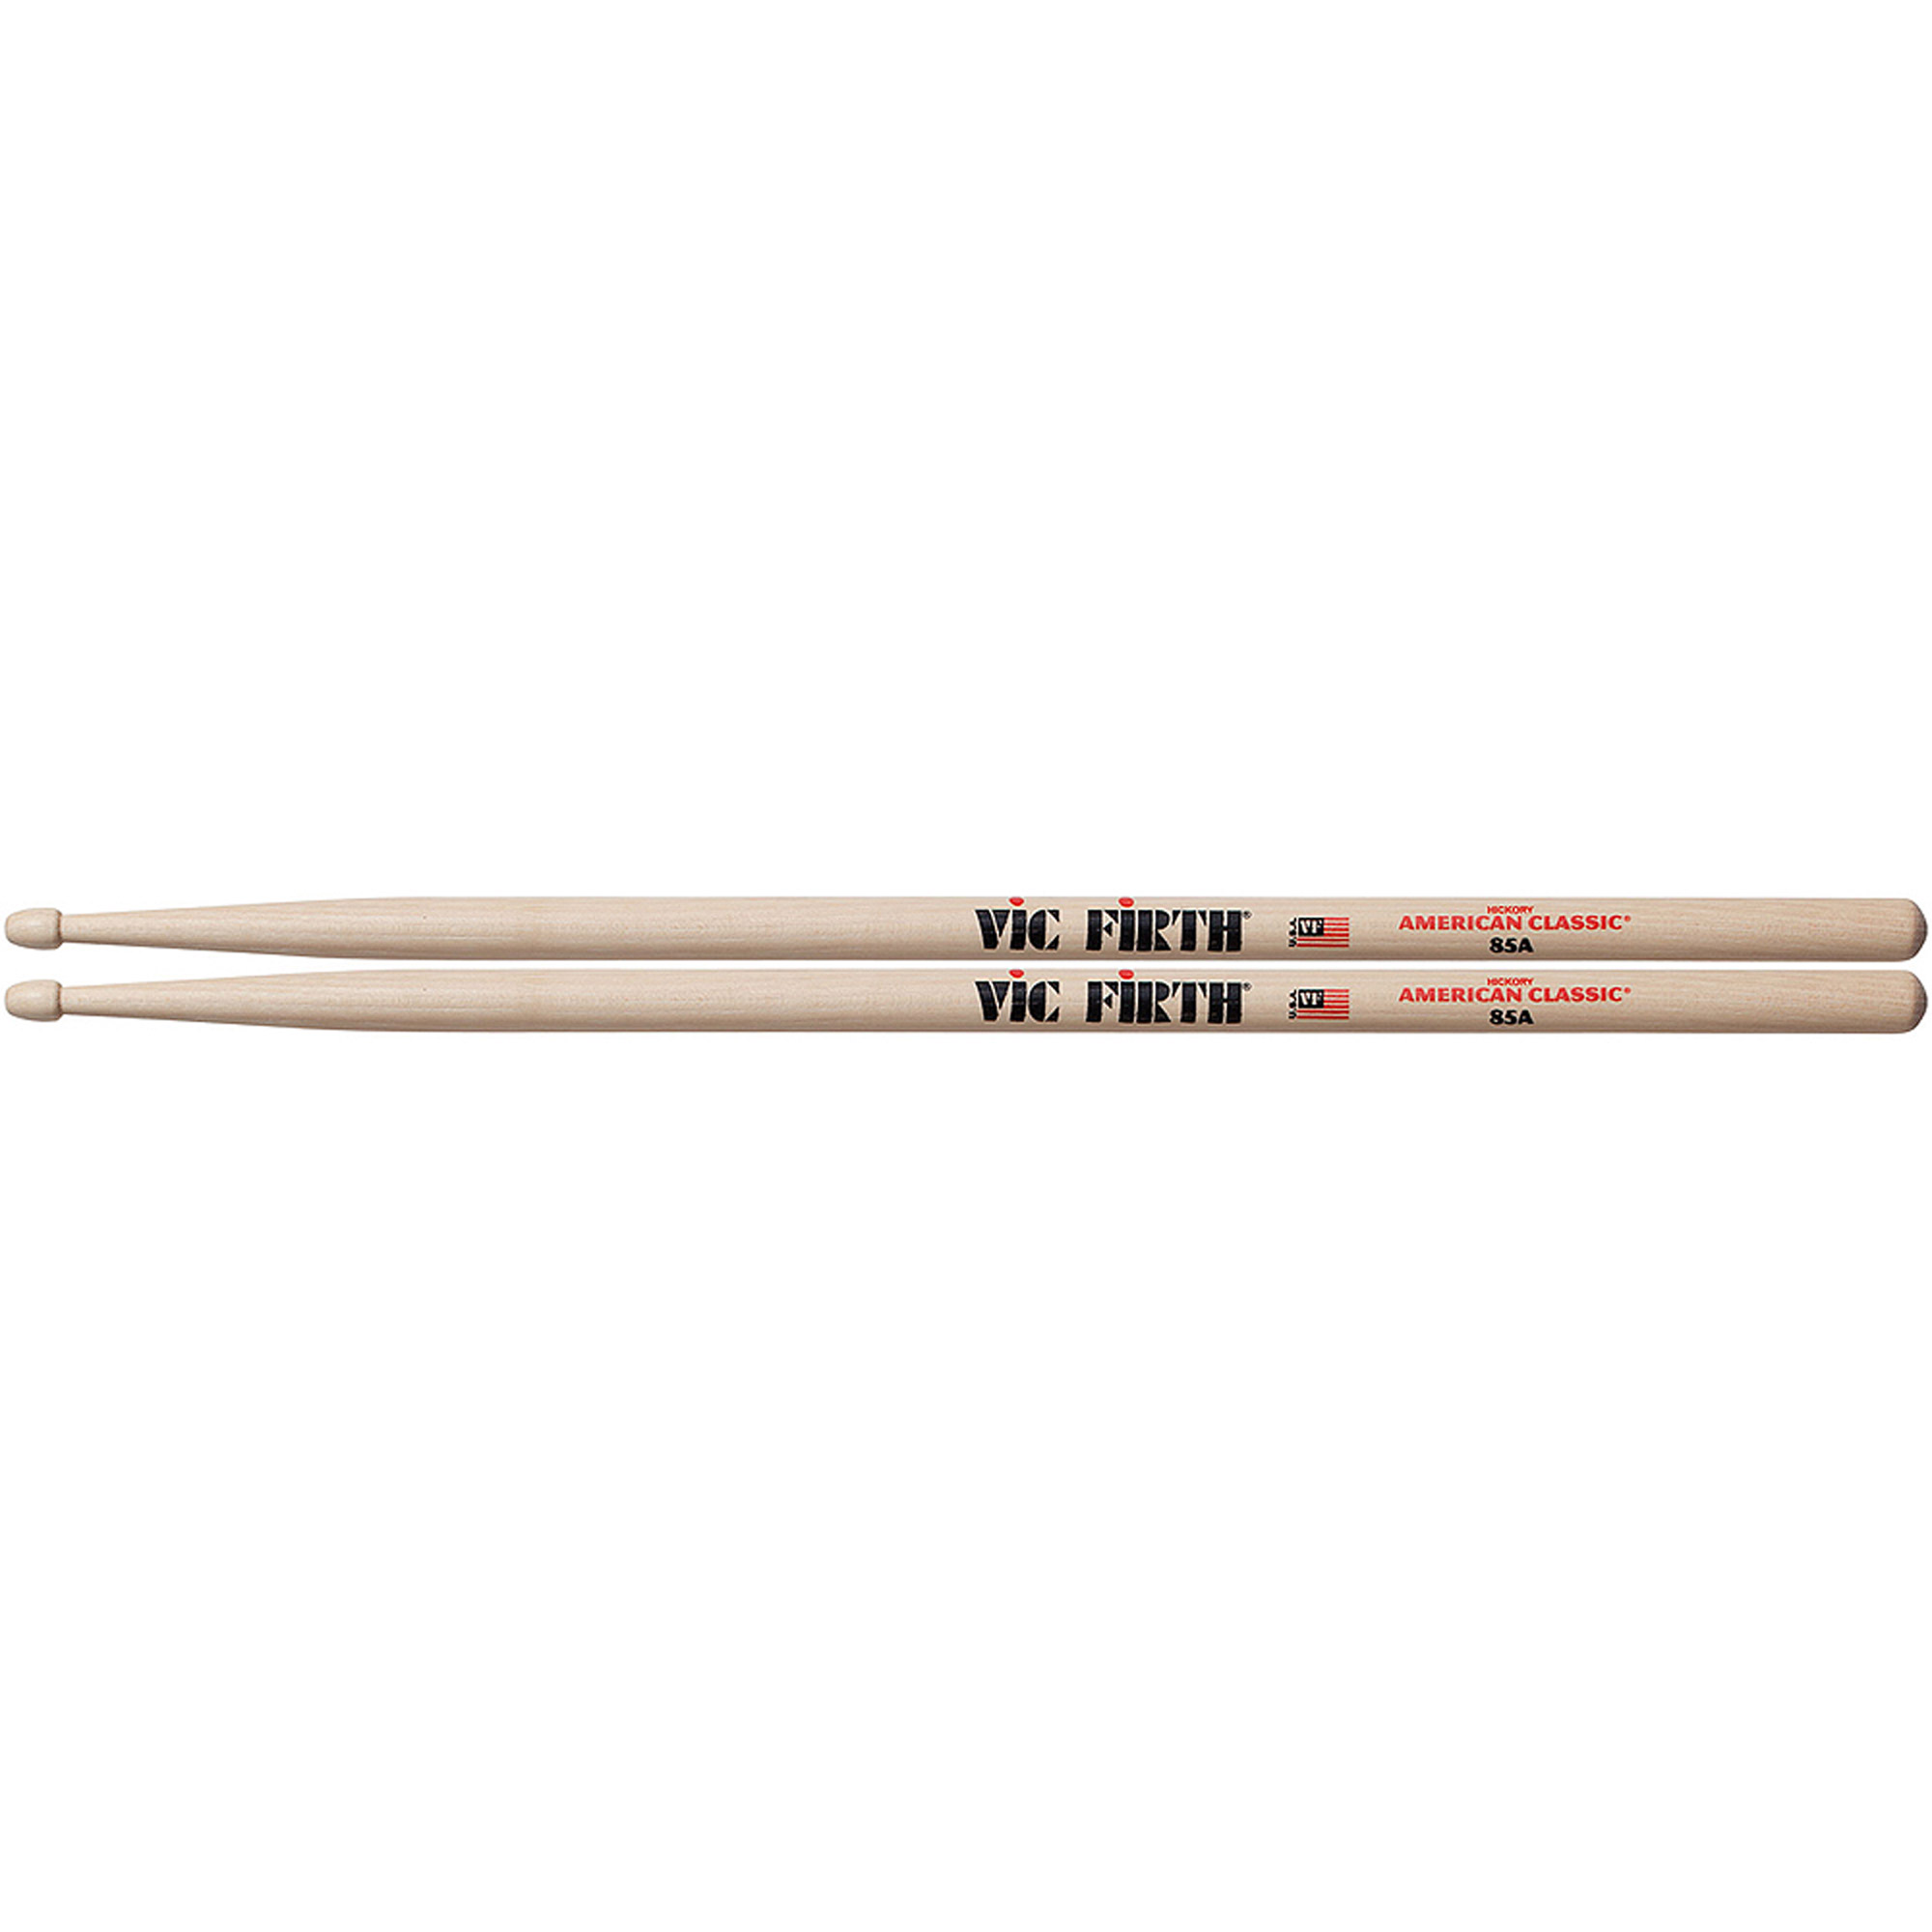 Vic Firth American Classic 85A Drumsticks, Wood Tip by Vic Firth